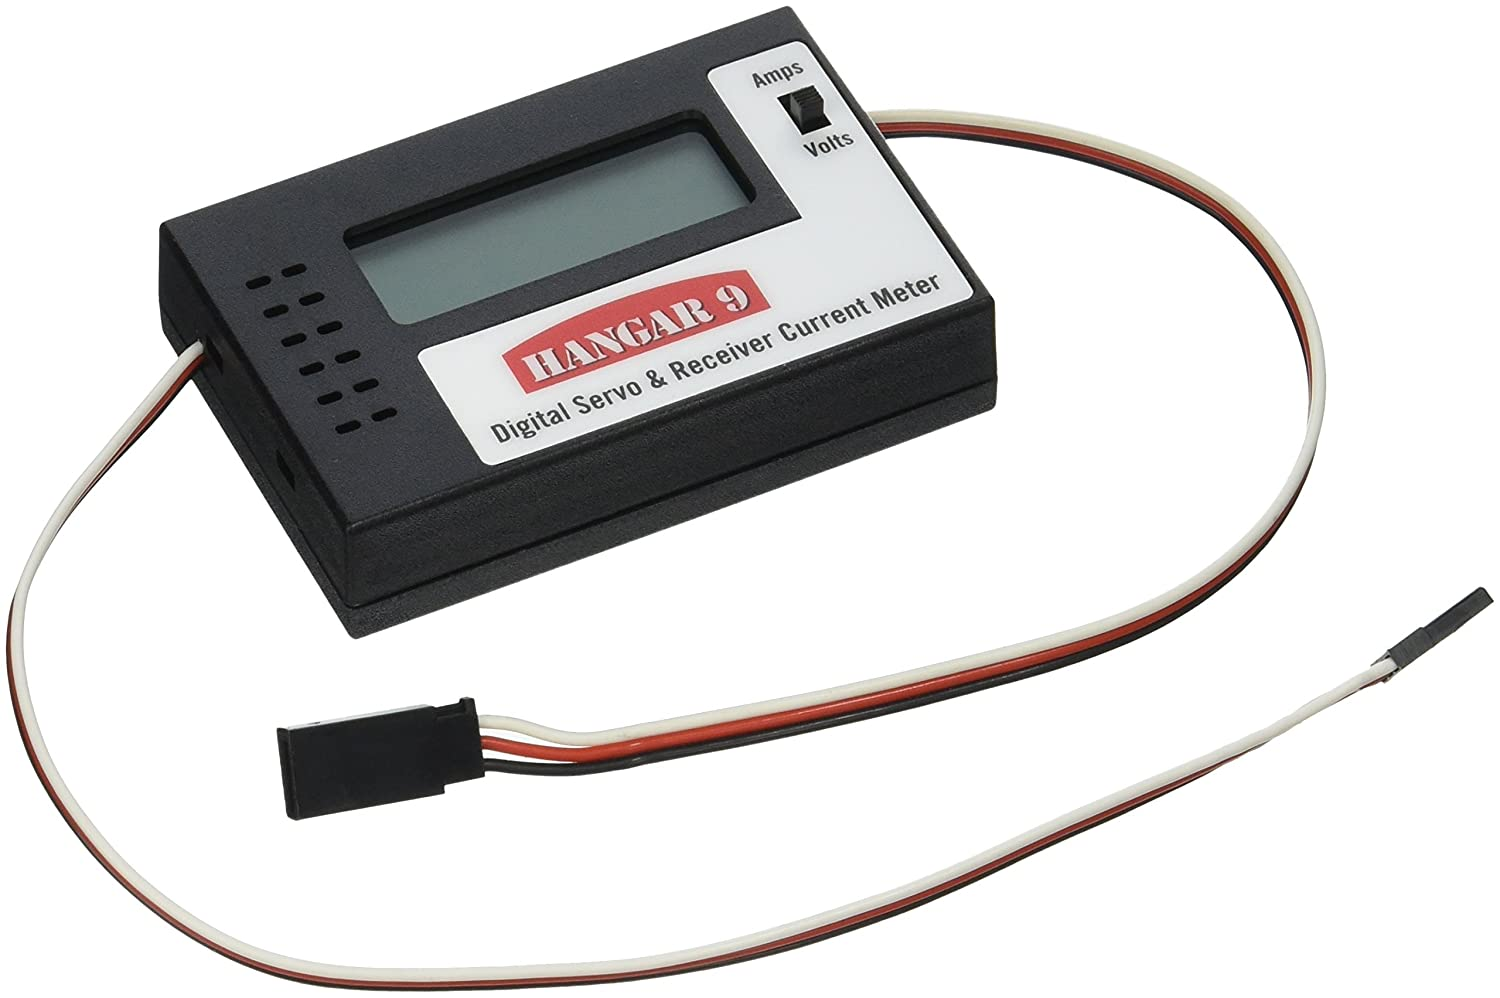 Hangar 9 Digital Servo  Receiver Current Meter Servos Vehicle Part